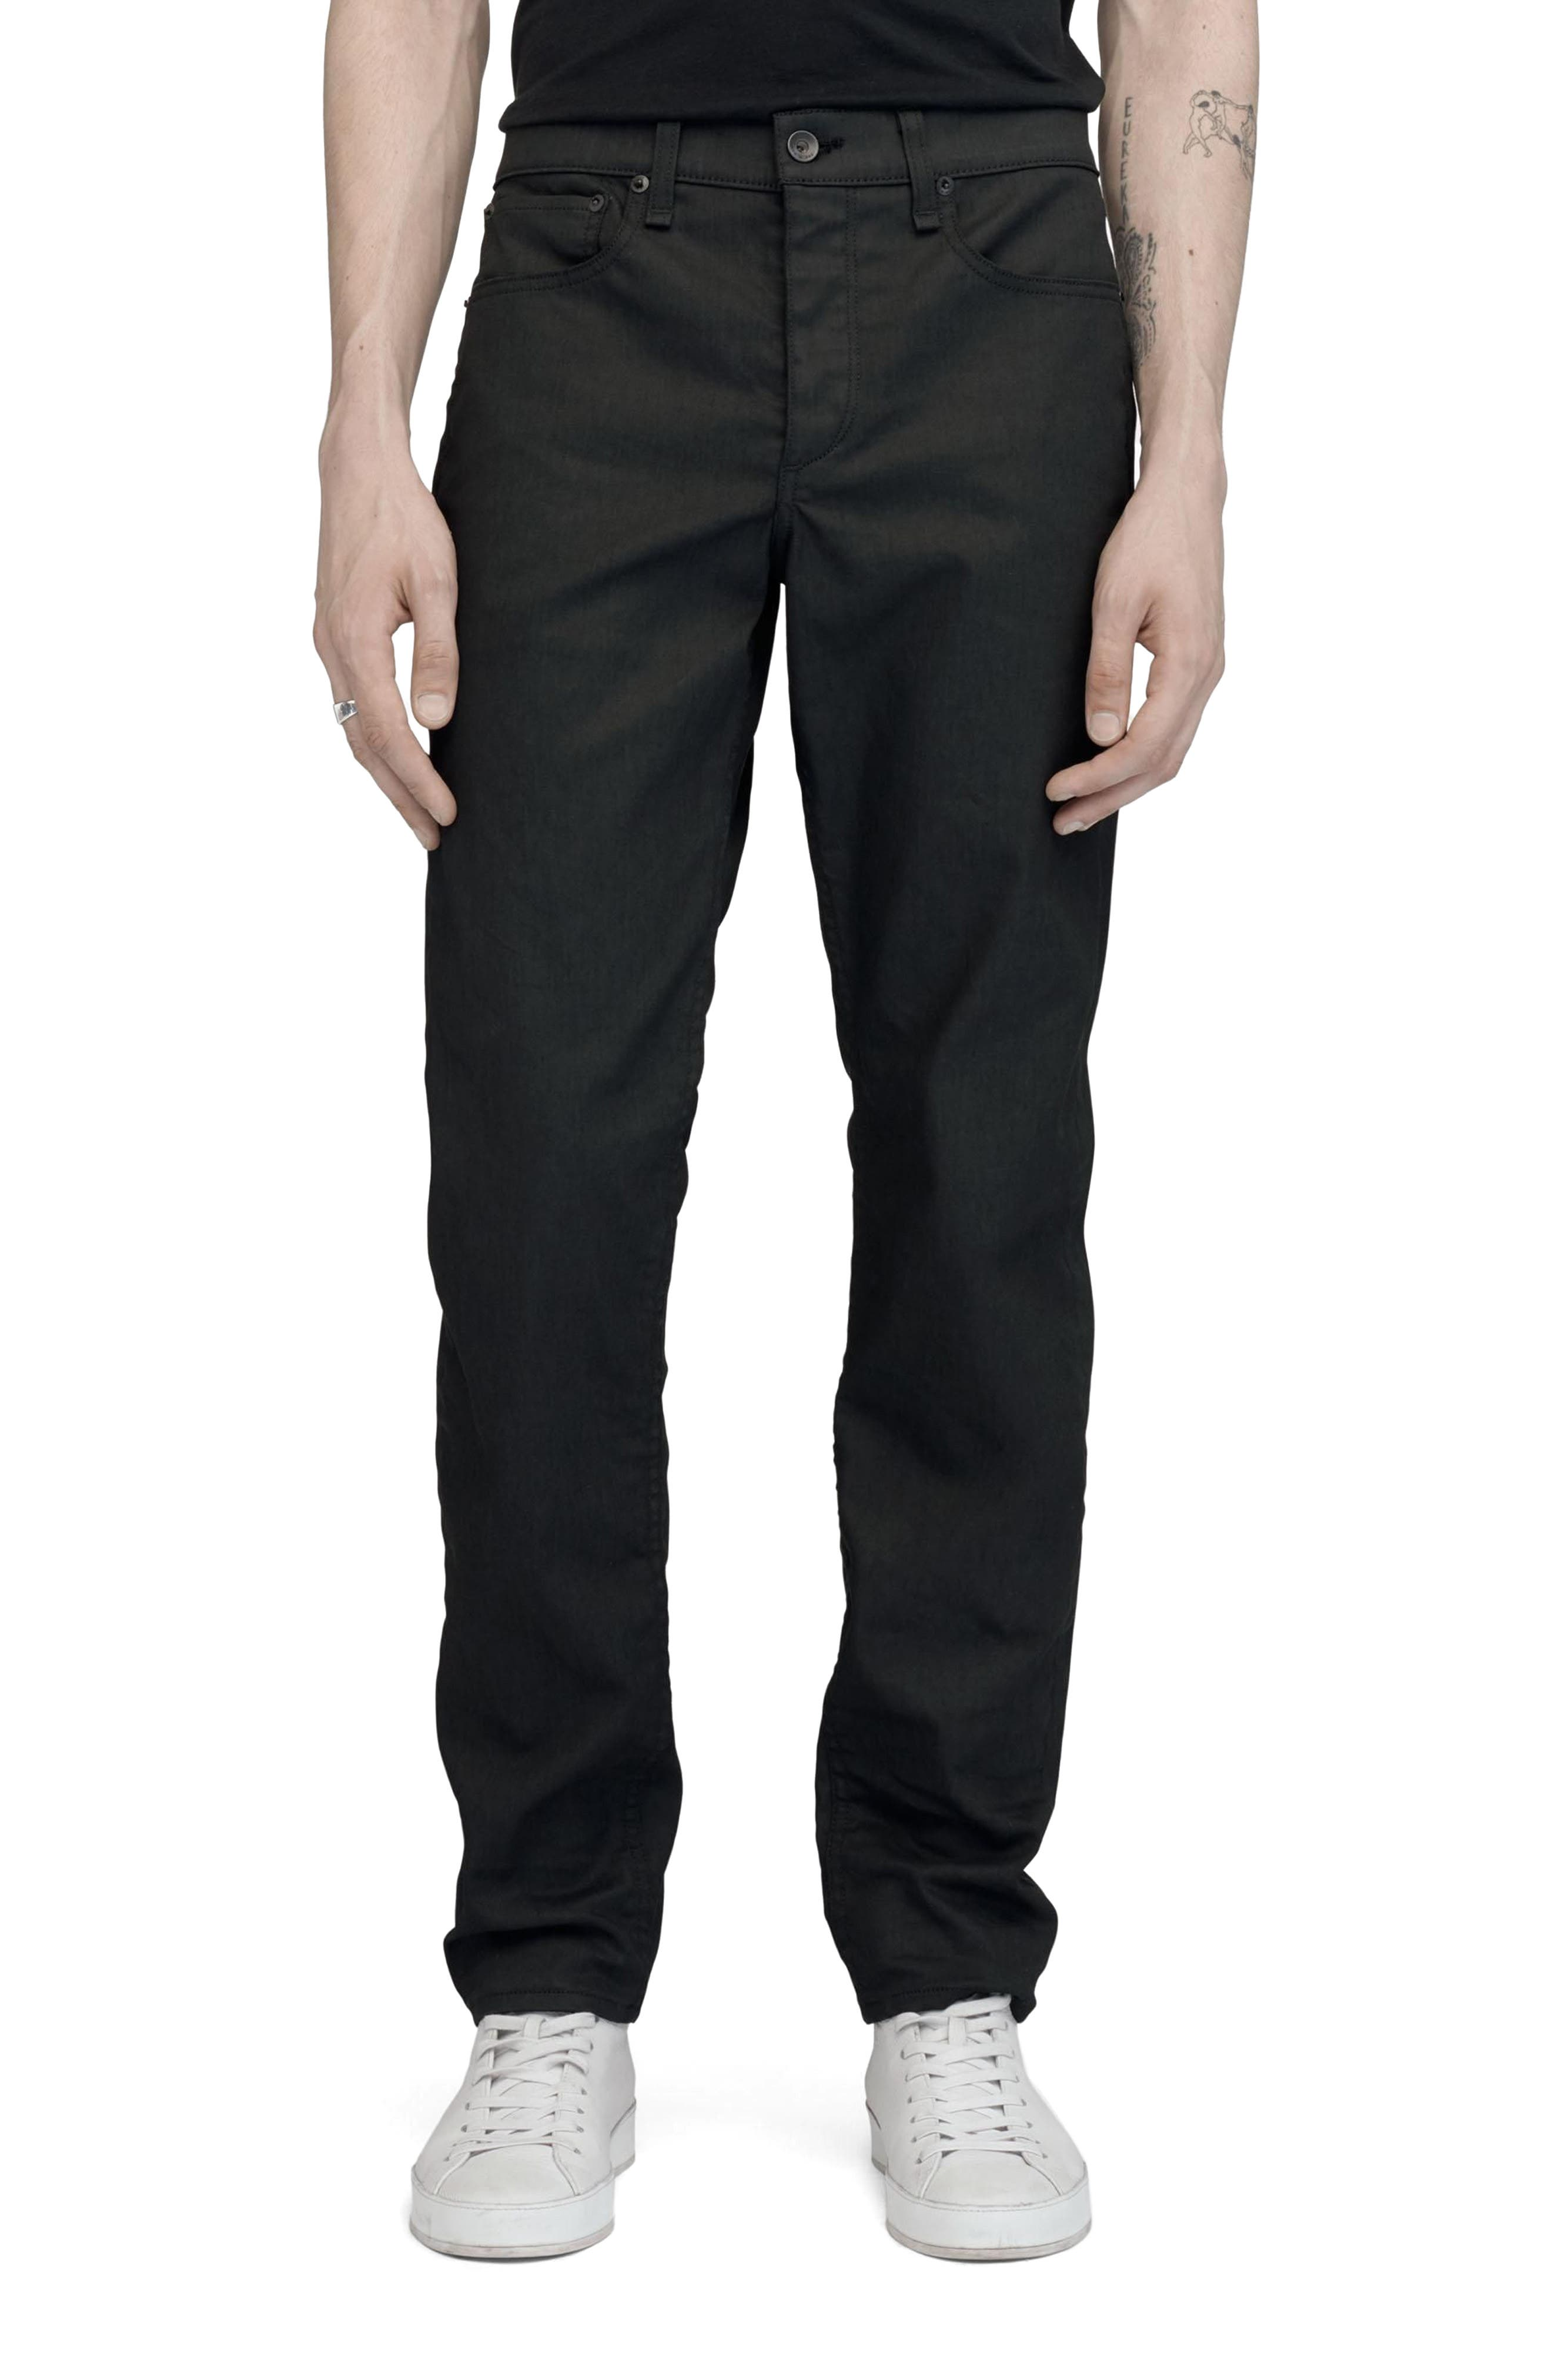 Alternate Image 1 Selected - rag & bone Fit 2 Slim Fit Jeans (Coated Black)